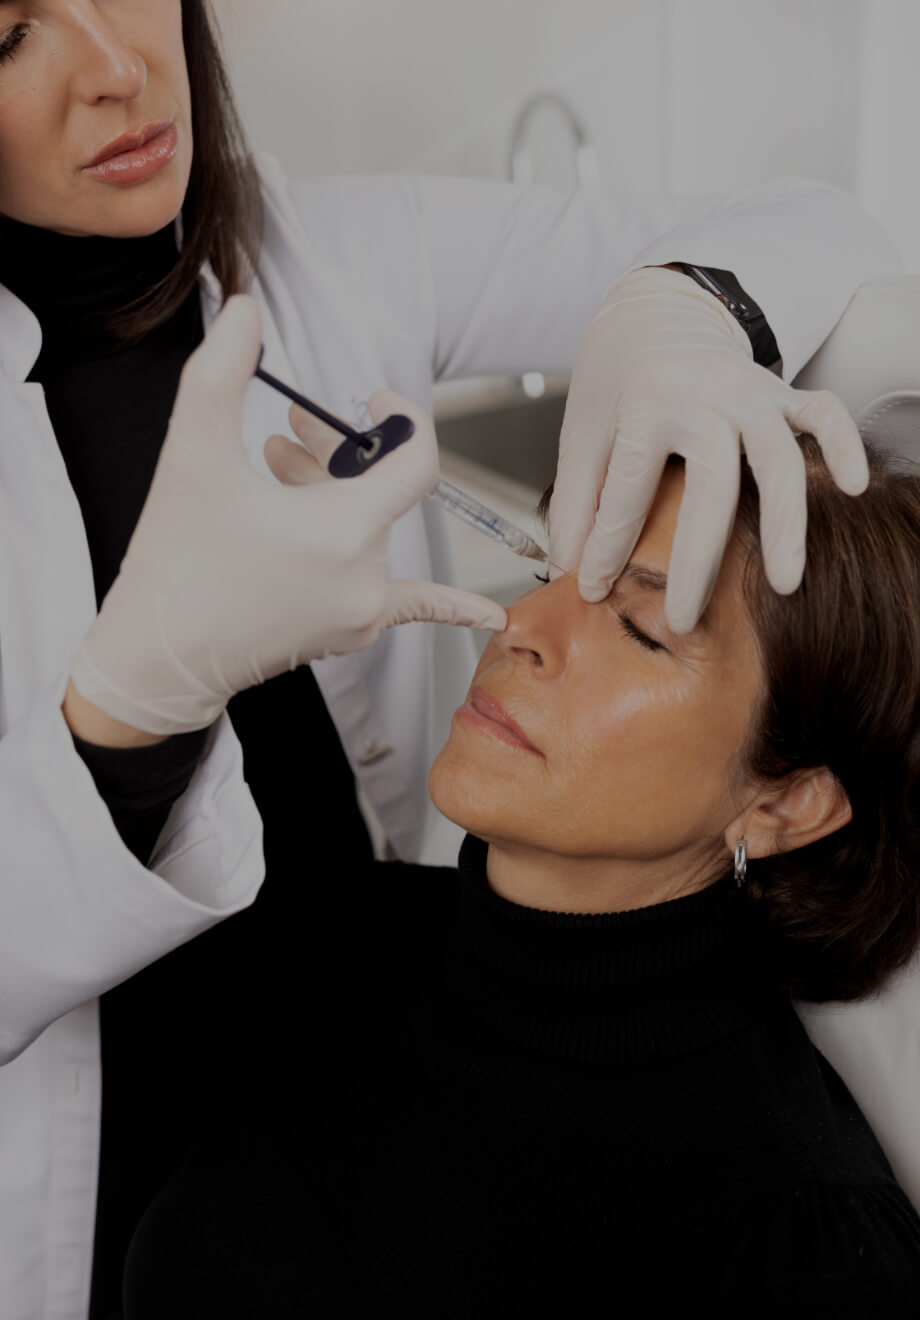 Dr. Chloé Sylvestre doing dermal filler injections onto the nose of a female patient